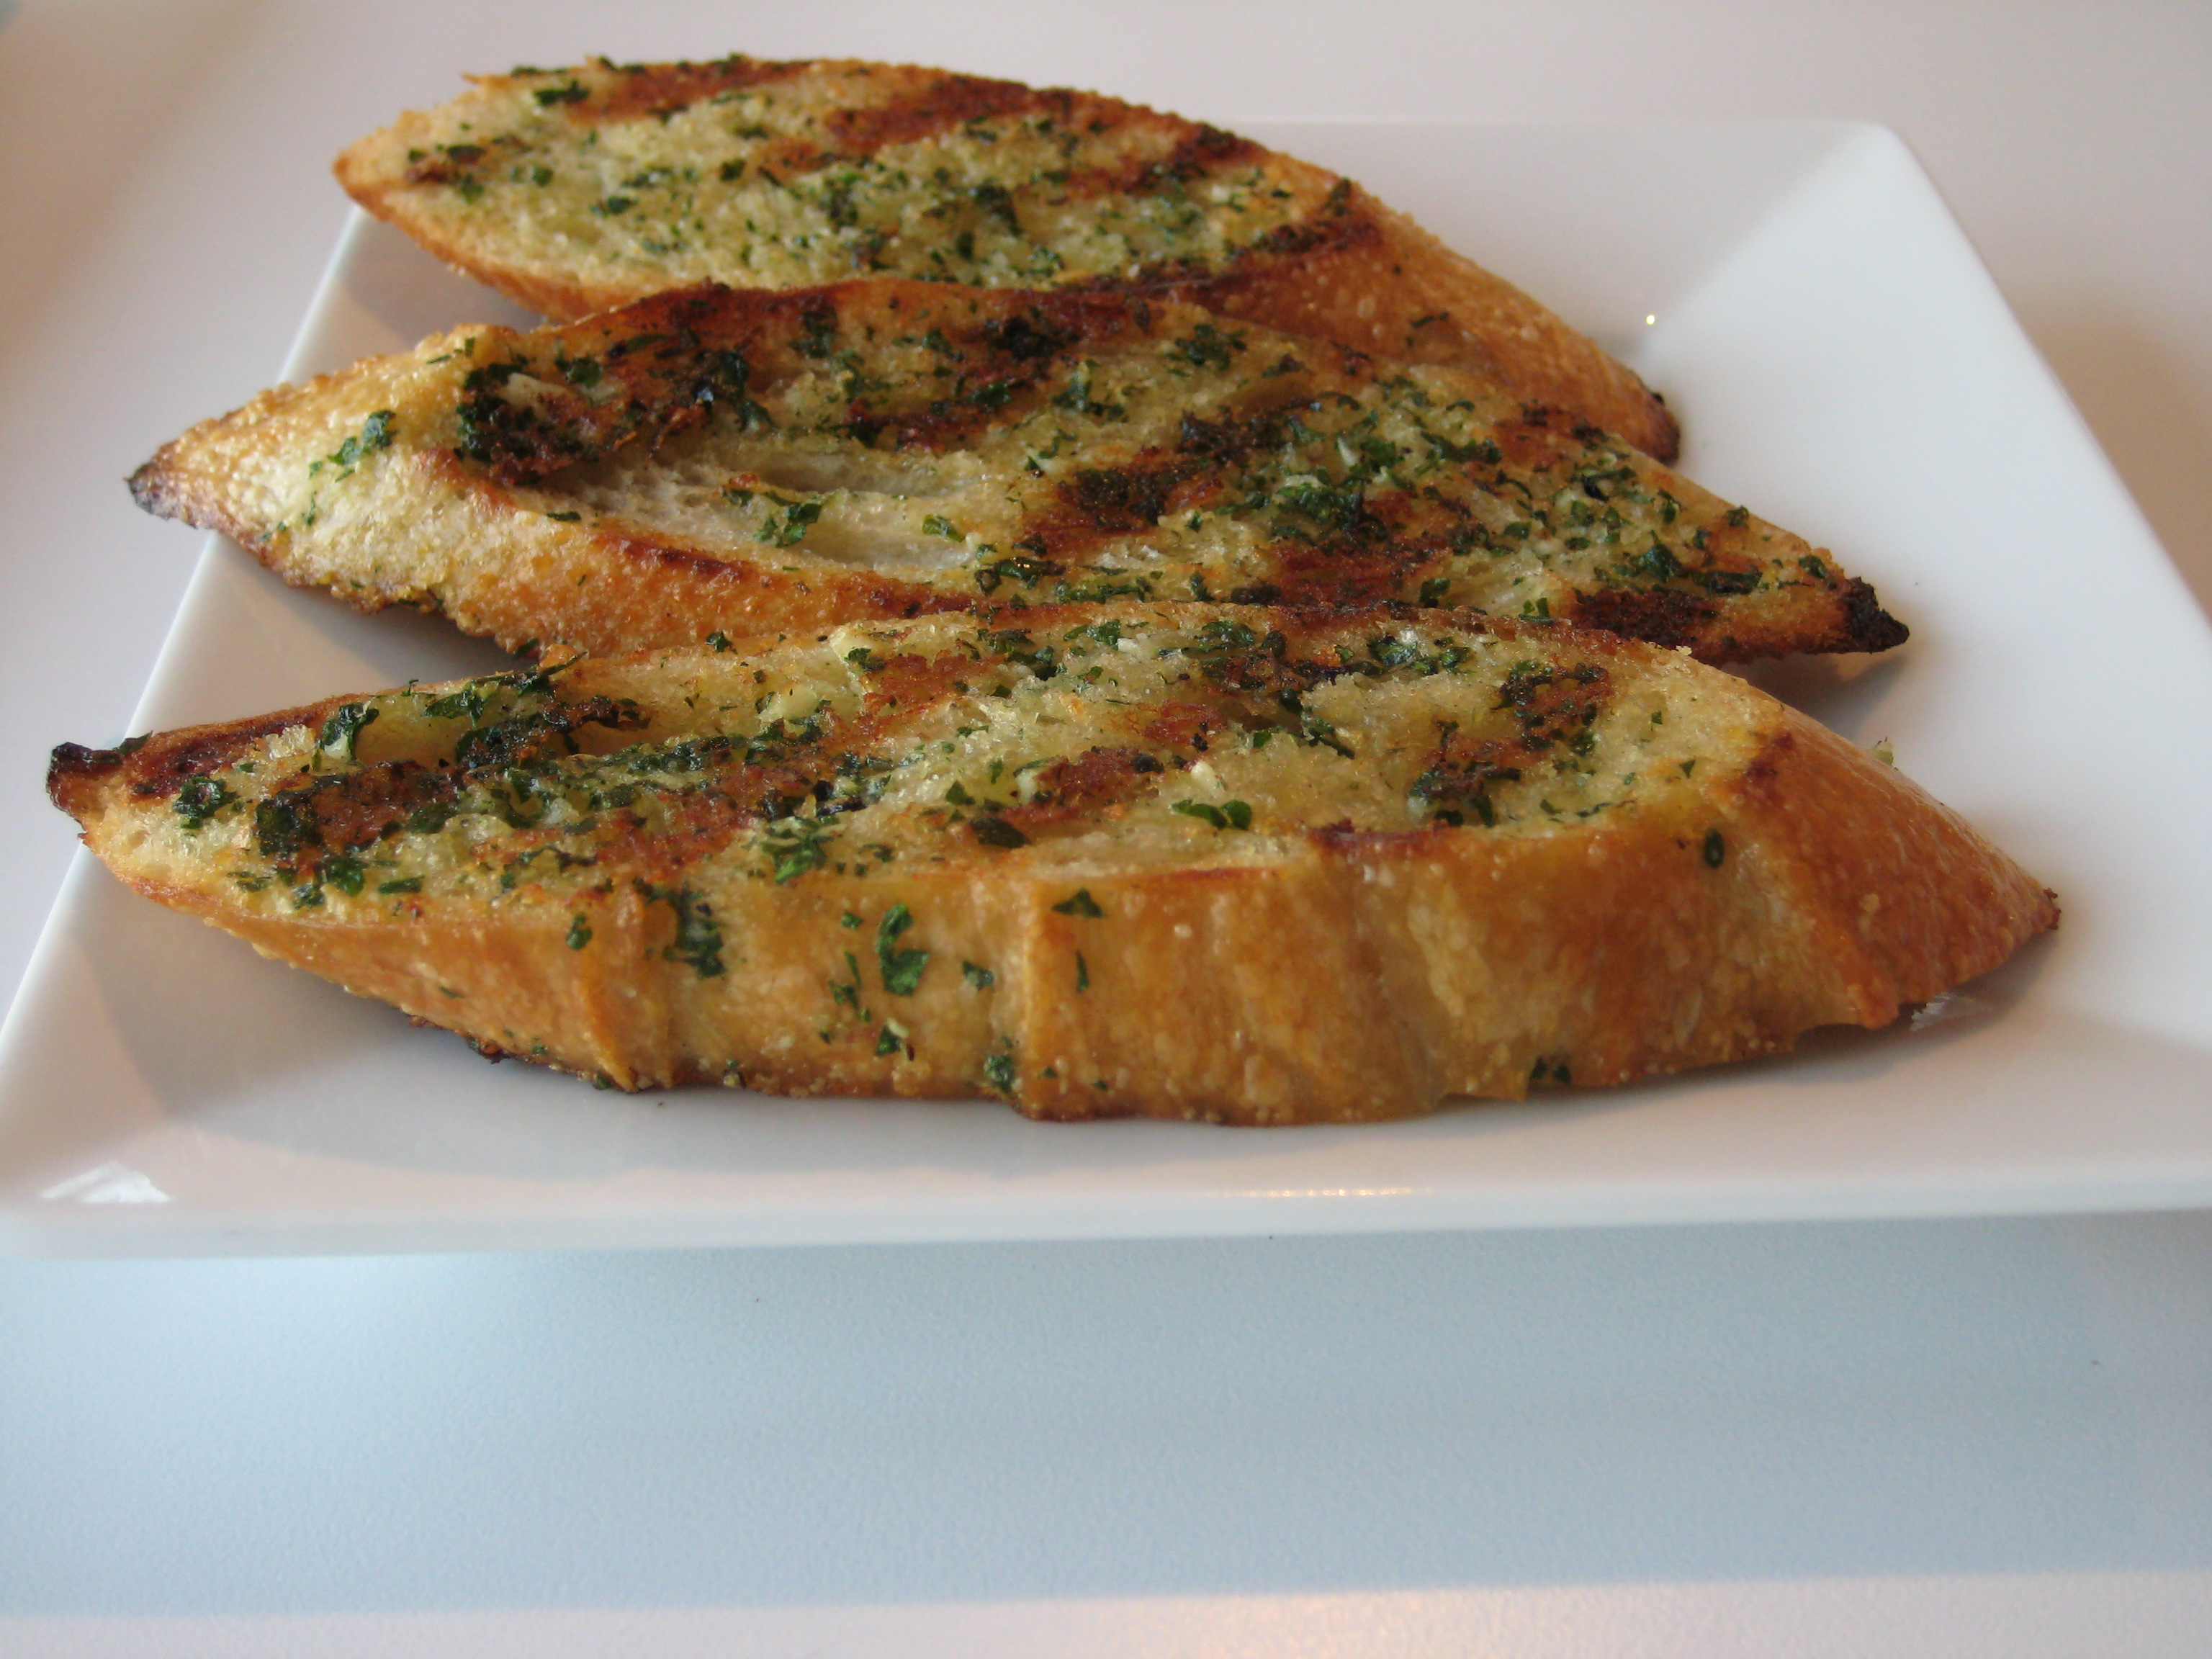 ... the other day, grilled garlic bread would make the perfect appetizer